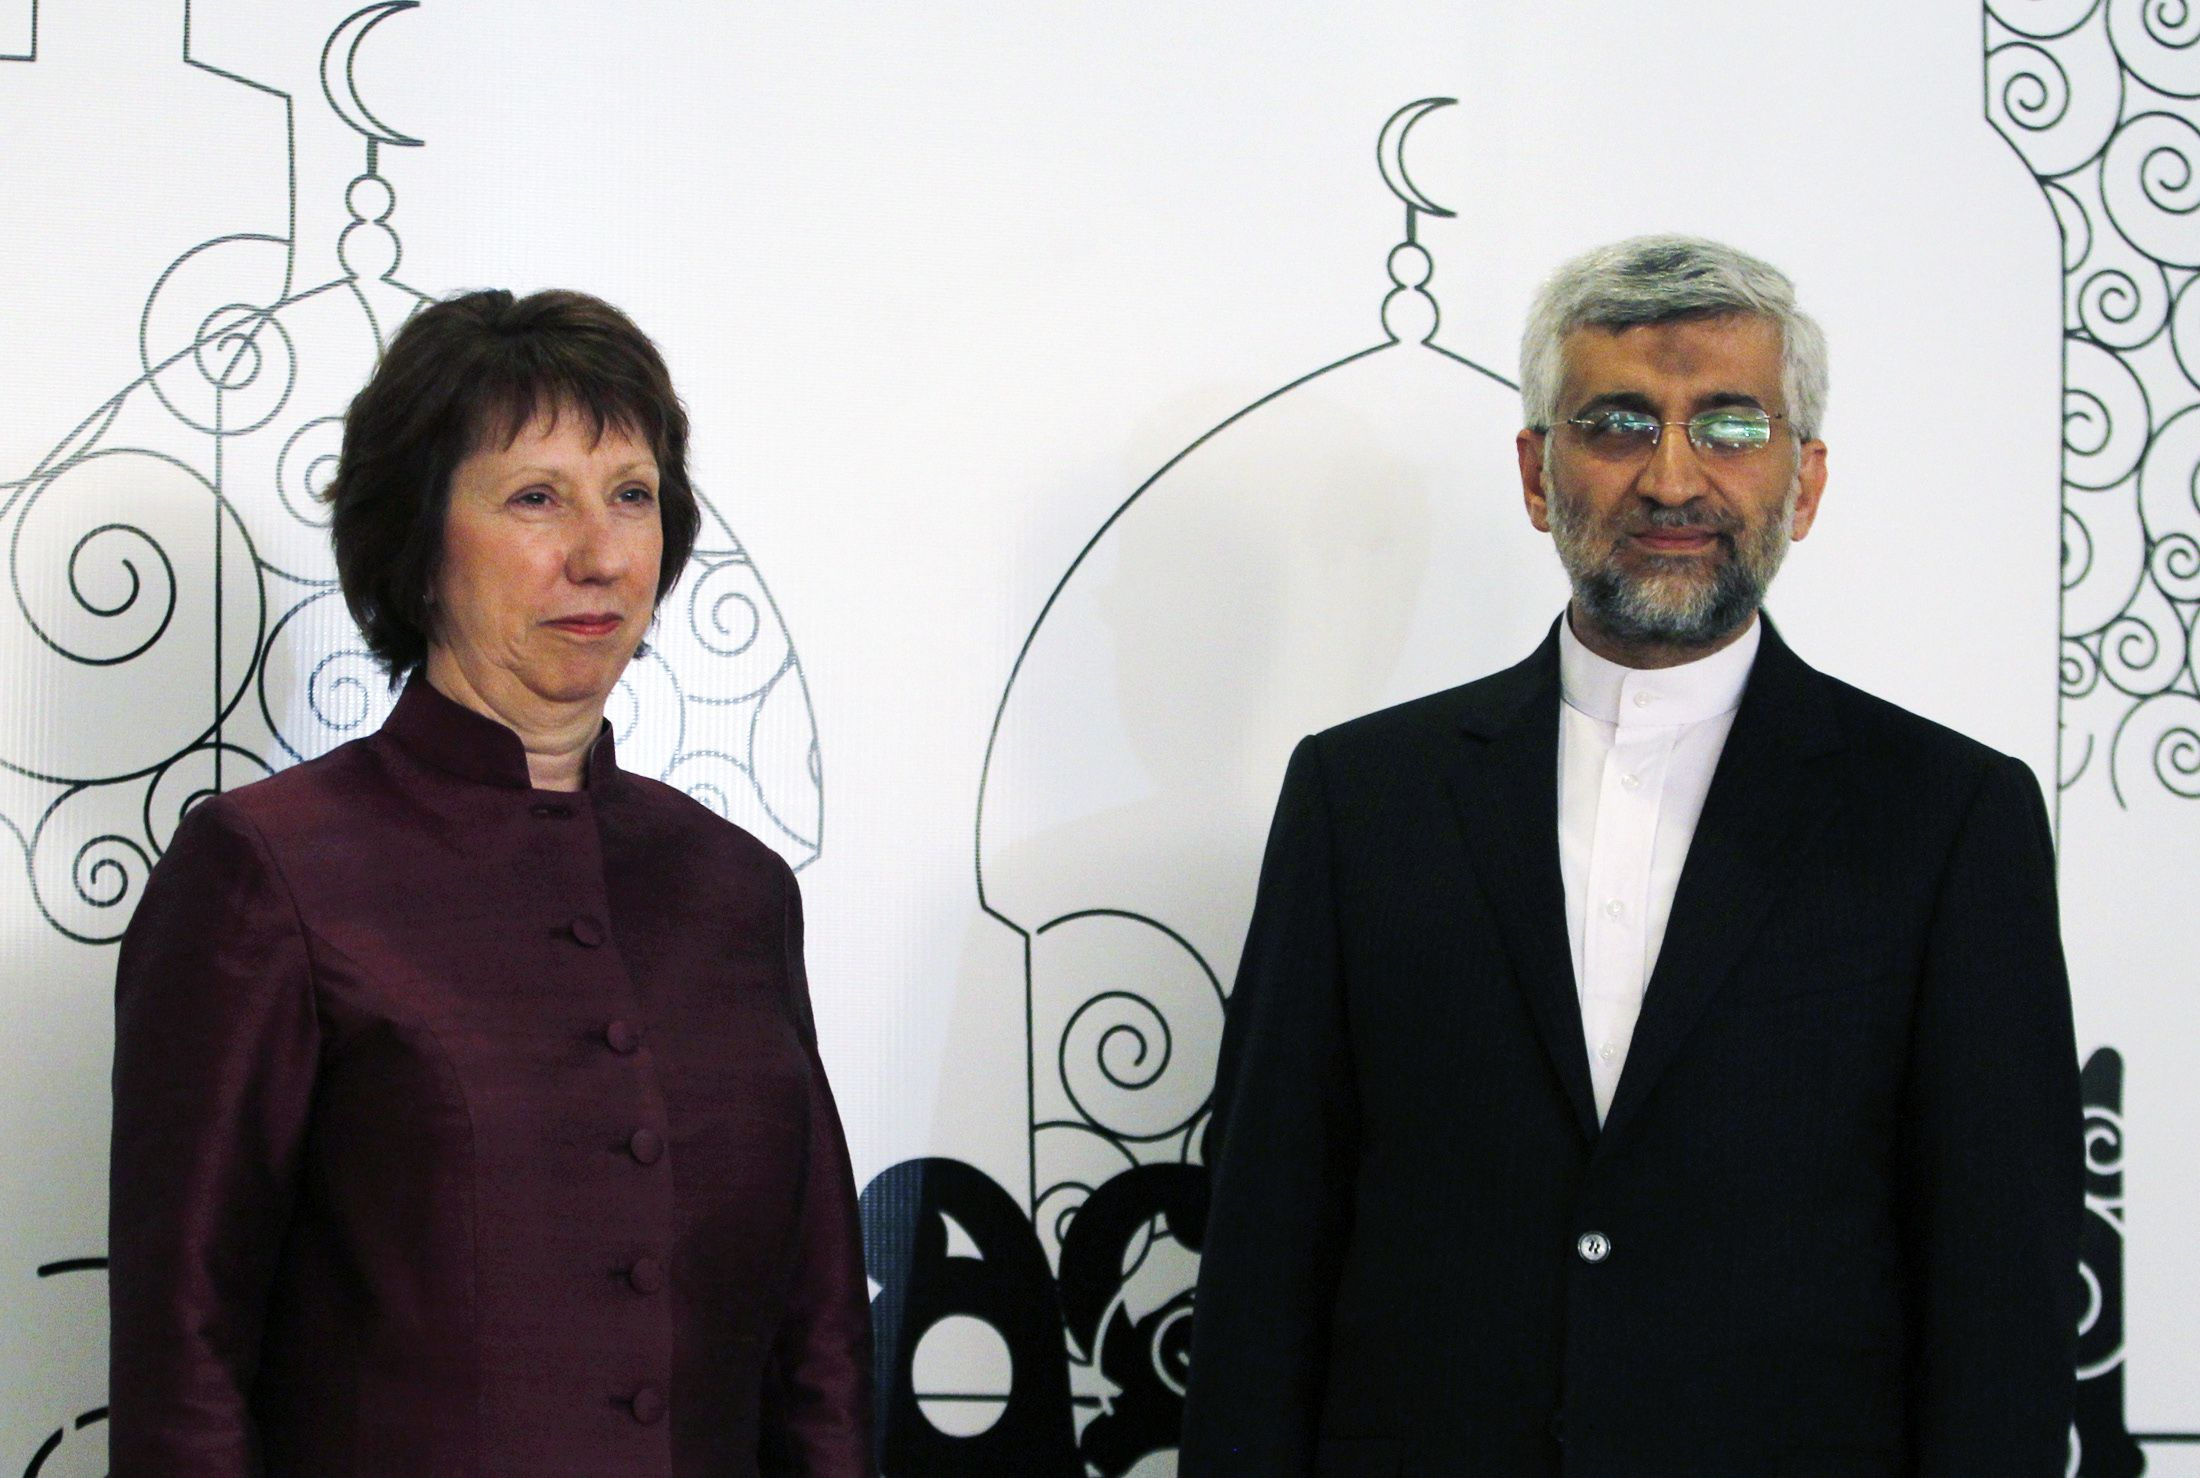 EU Foreign Policy Chief Catherine Ashton and Saeed Jalili, Secretary of Iran's Supreme National Security Council